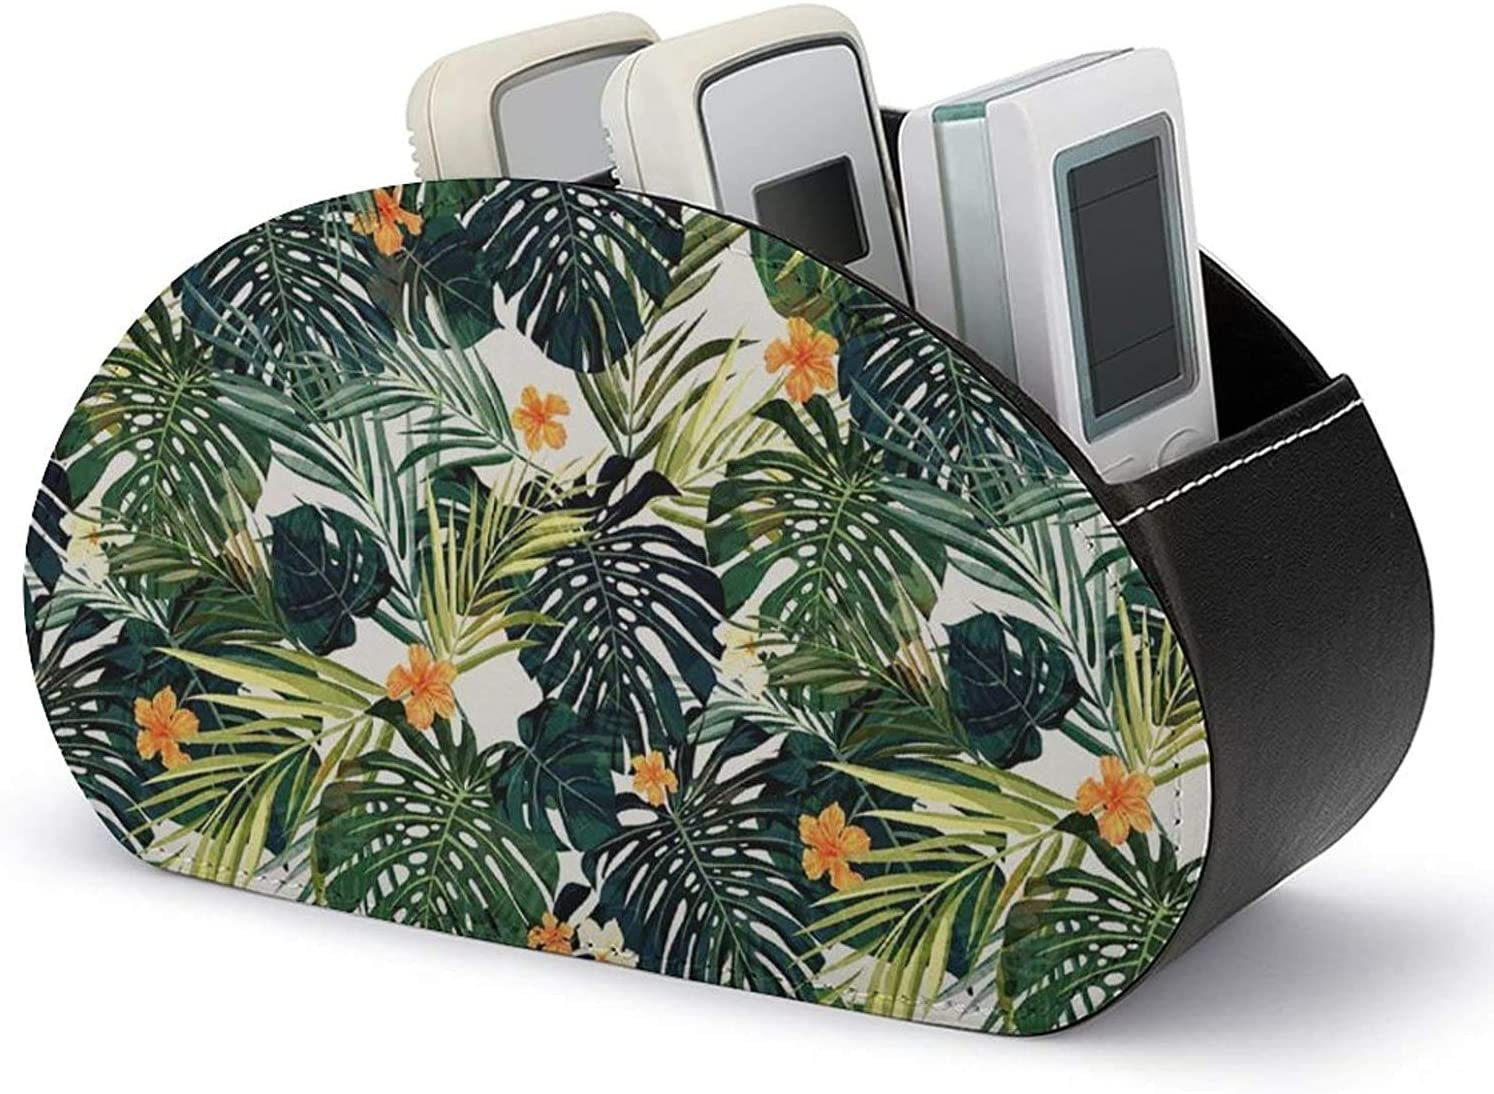 PU Leather Remote Control Holder Organization Botanical with low-pricing an 4 years warranty